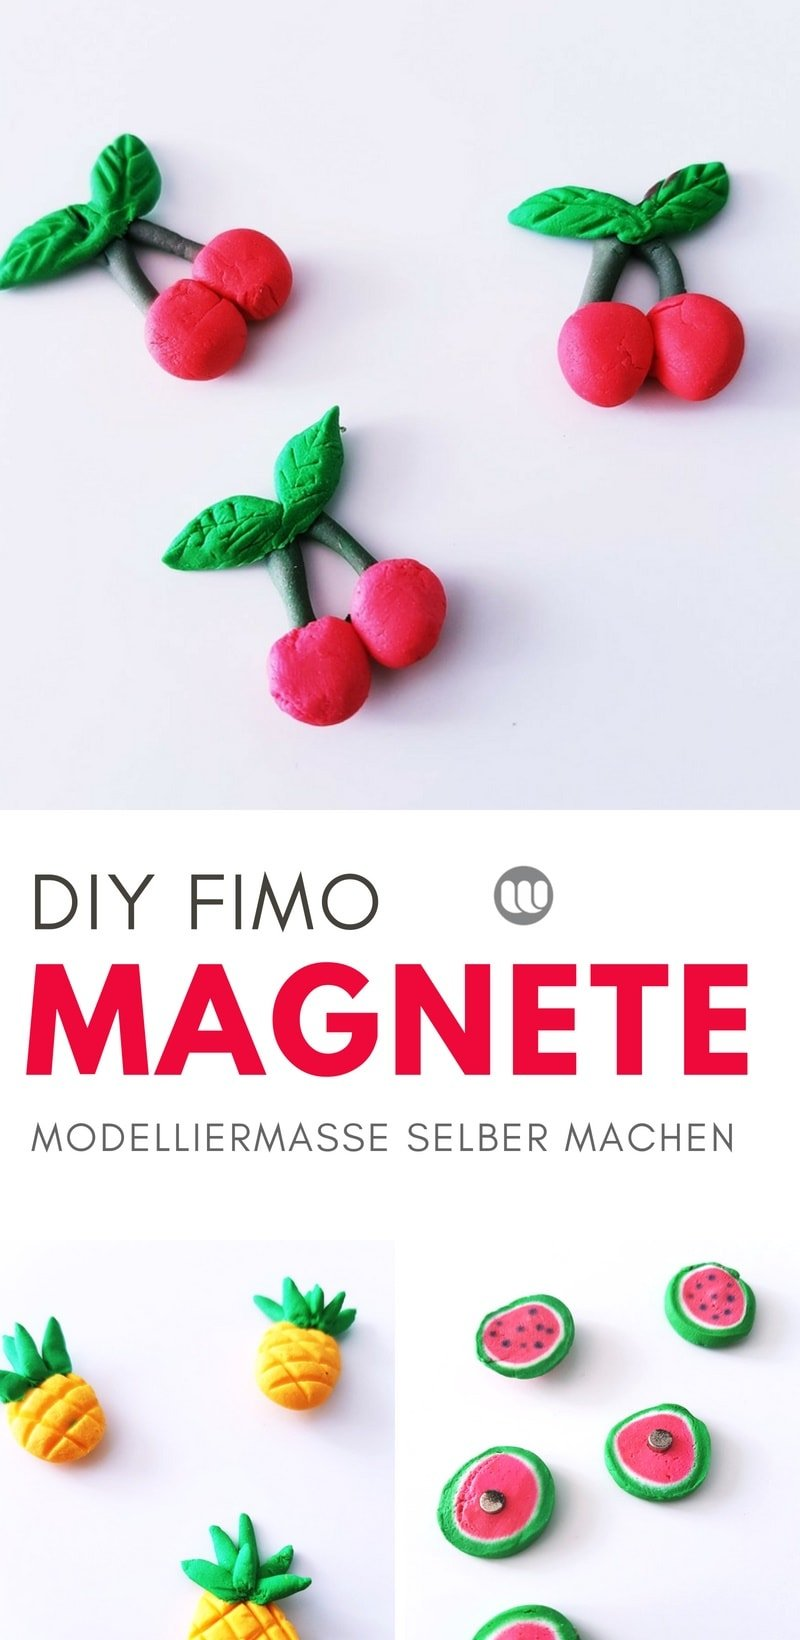 diy k hlschrankmagnete fruchtige magnete aus modelliermasse. Black Bedroom Furniture Sets. Home Design Ideas